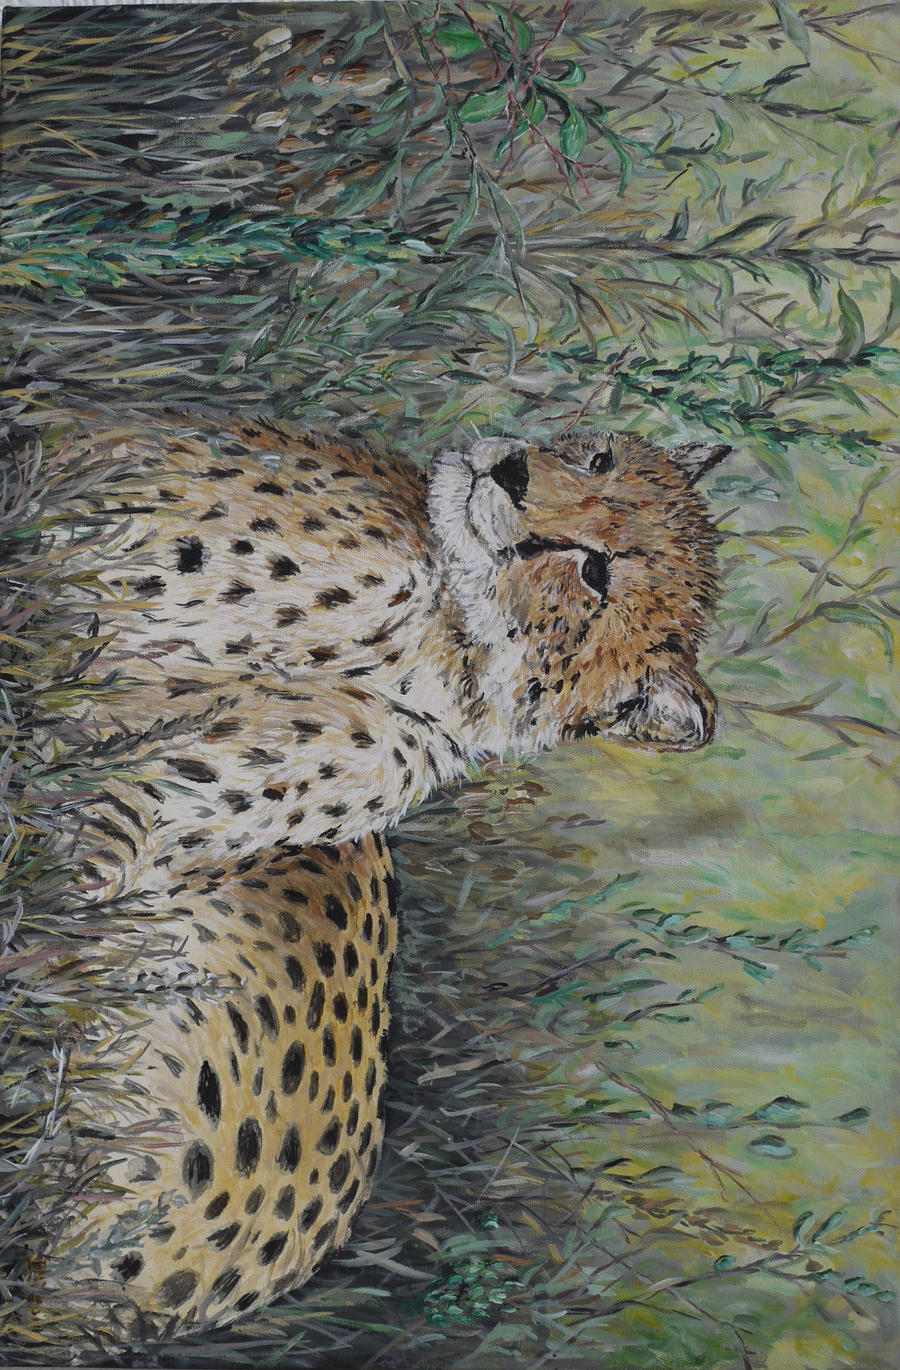 Cheetah in the grass 2 by acrylicwildlife